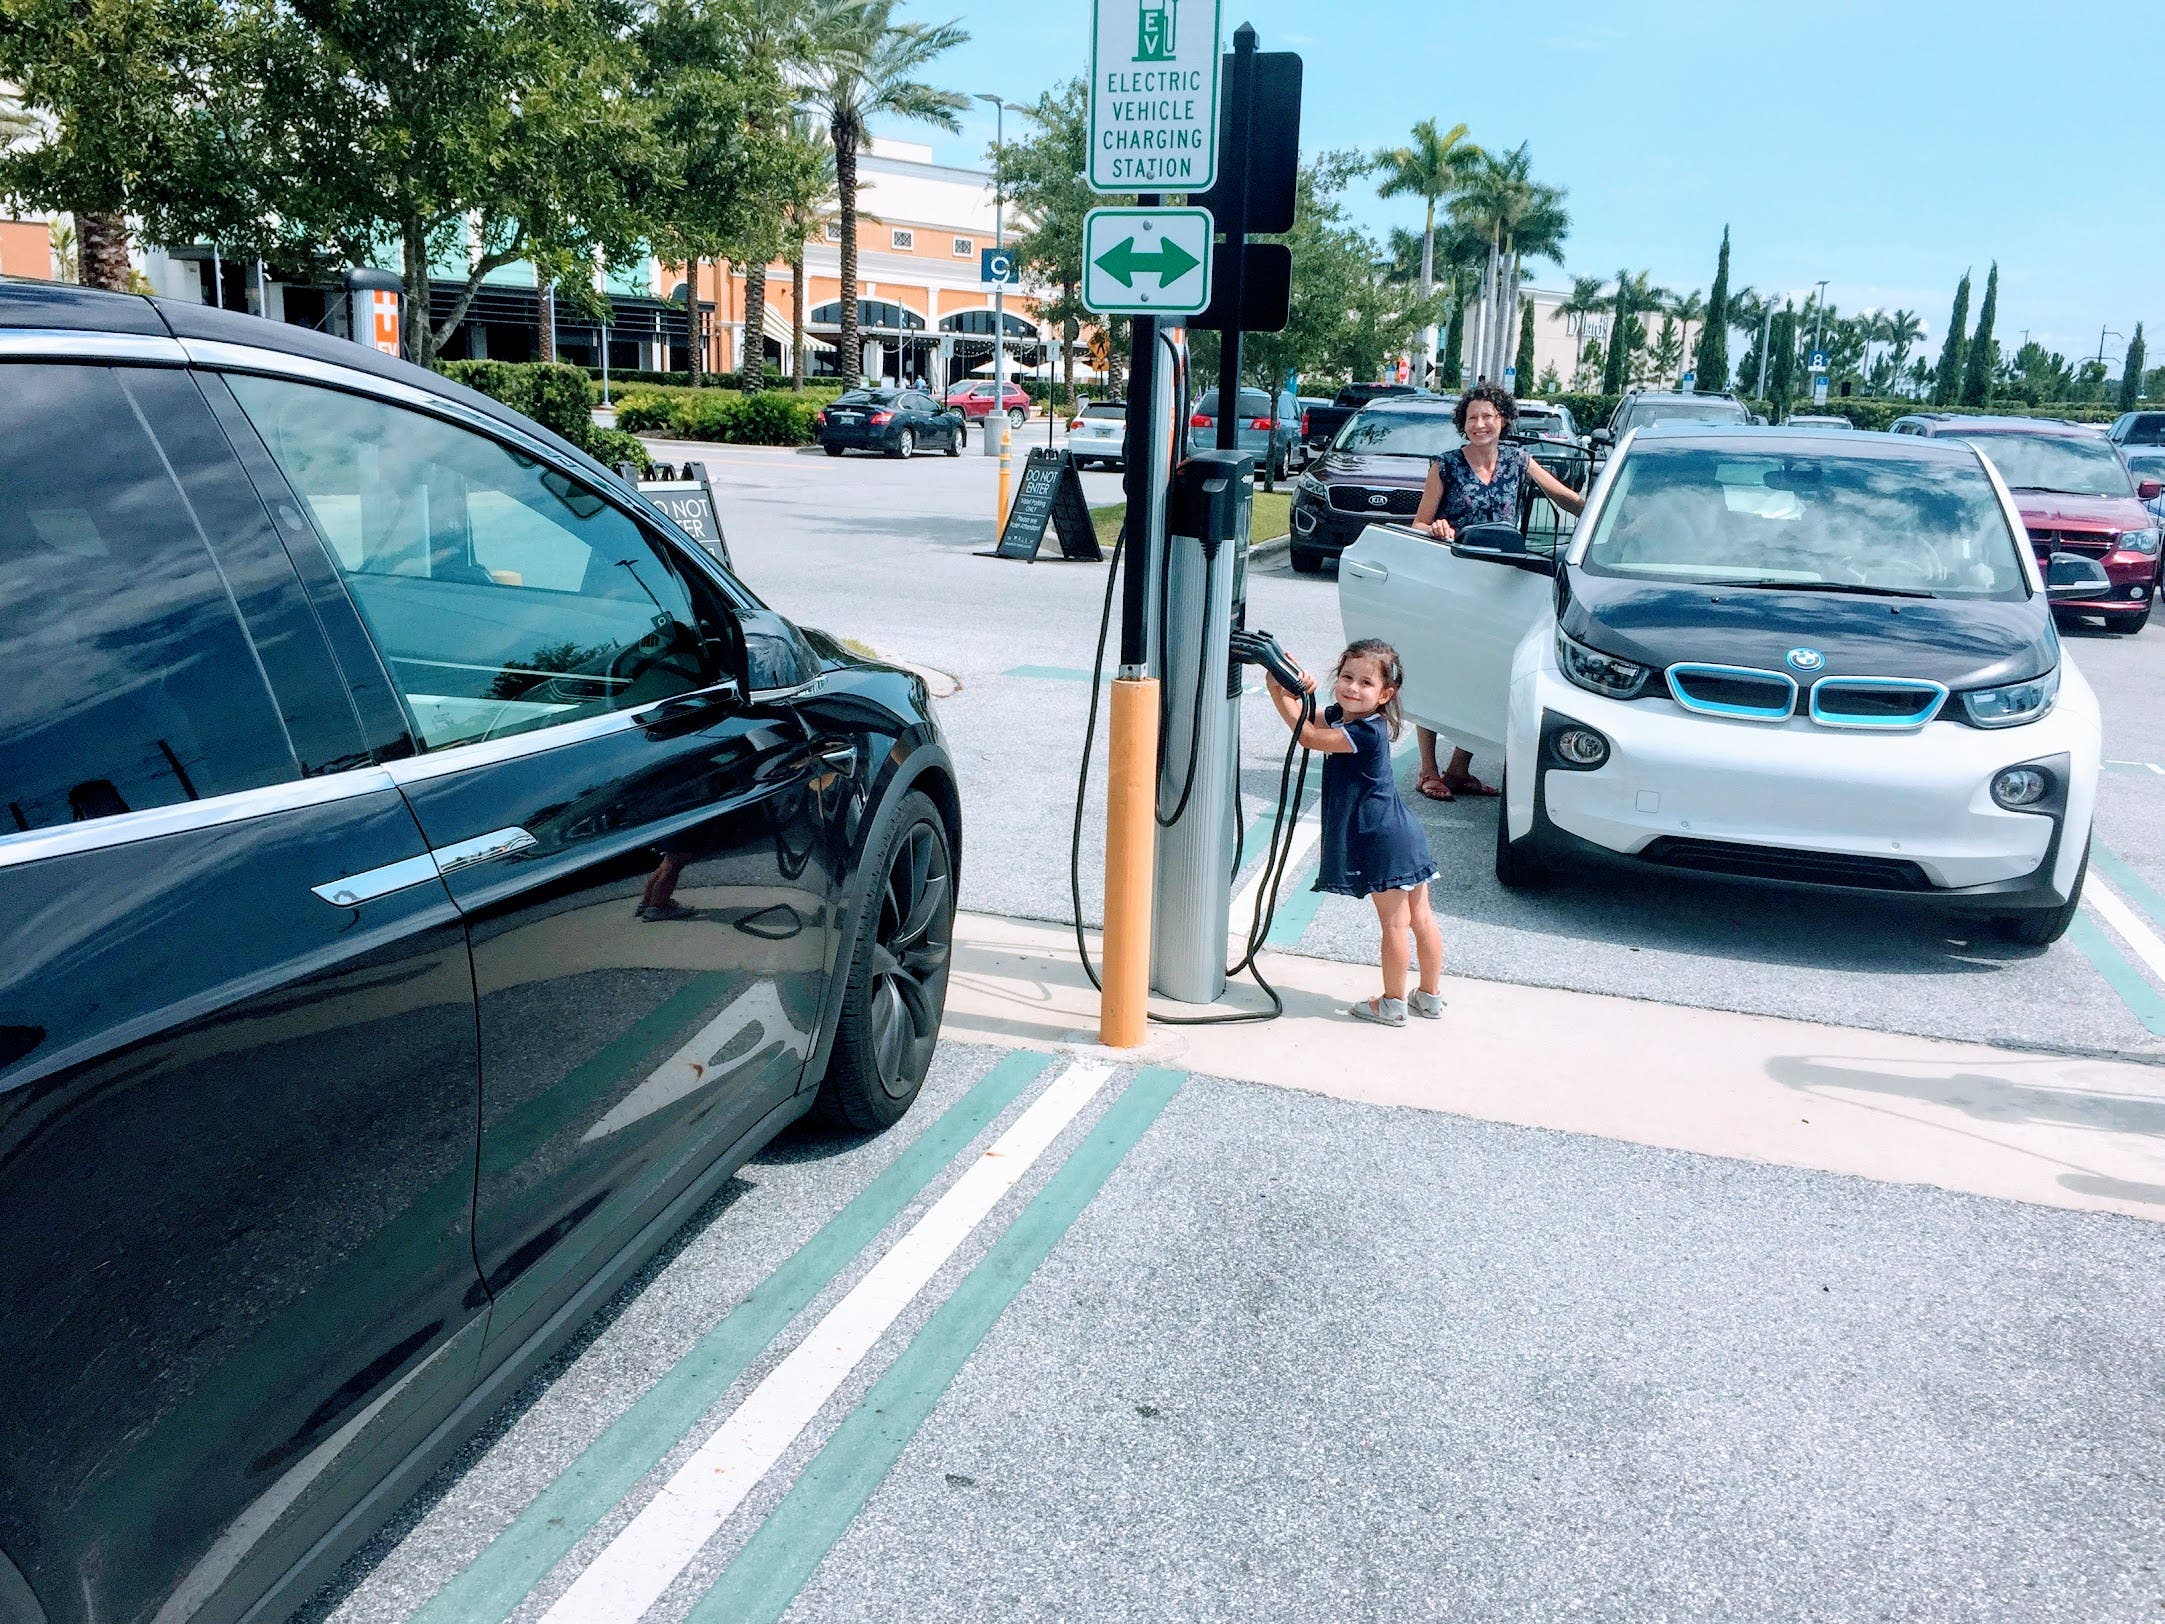 It S Nicely Designed To Find Chargers And Explore Which Local Businesses Organizations Are Awesome Ev Charging Leaders